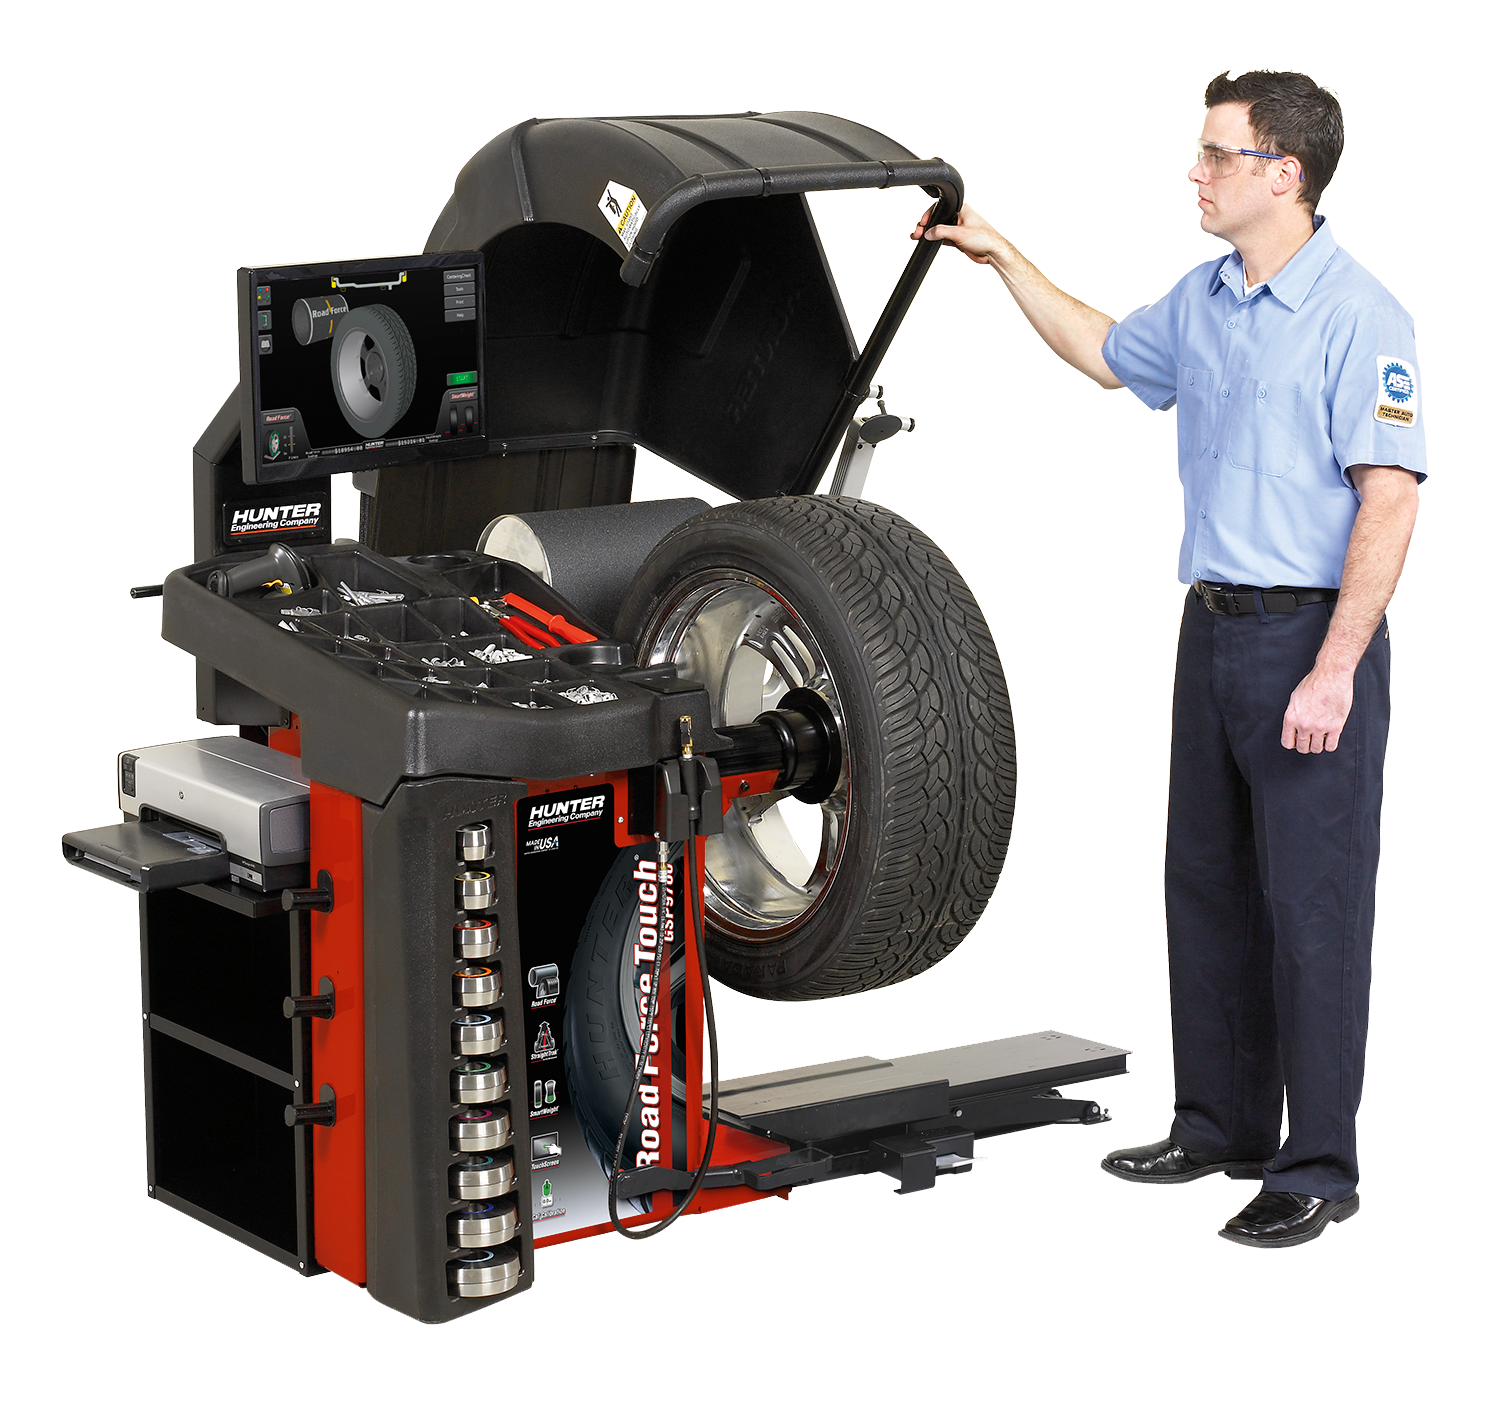 Hunter wheel balancer dealer in CT